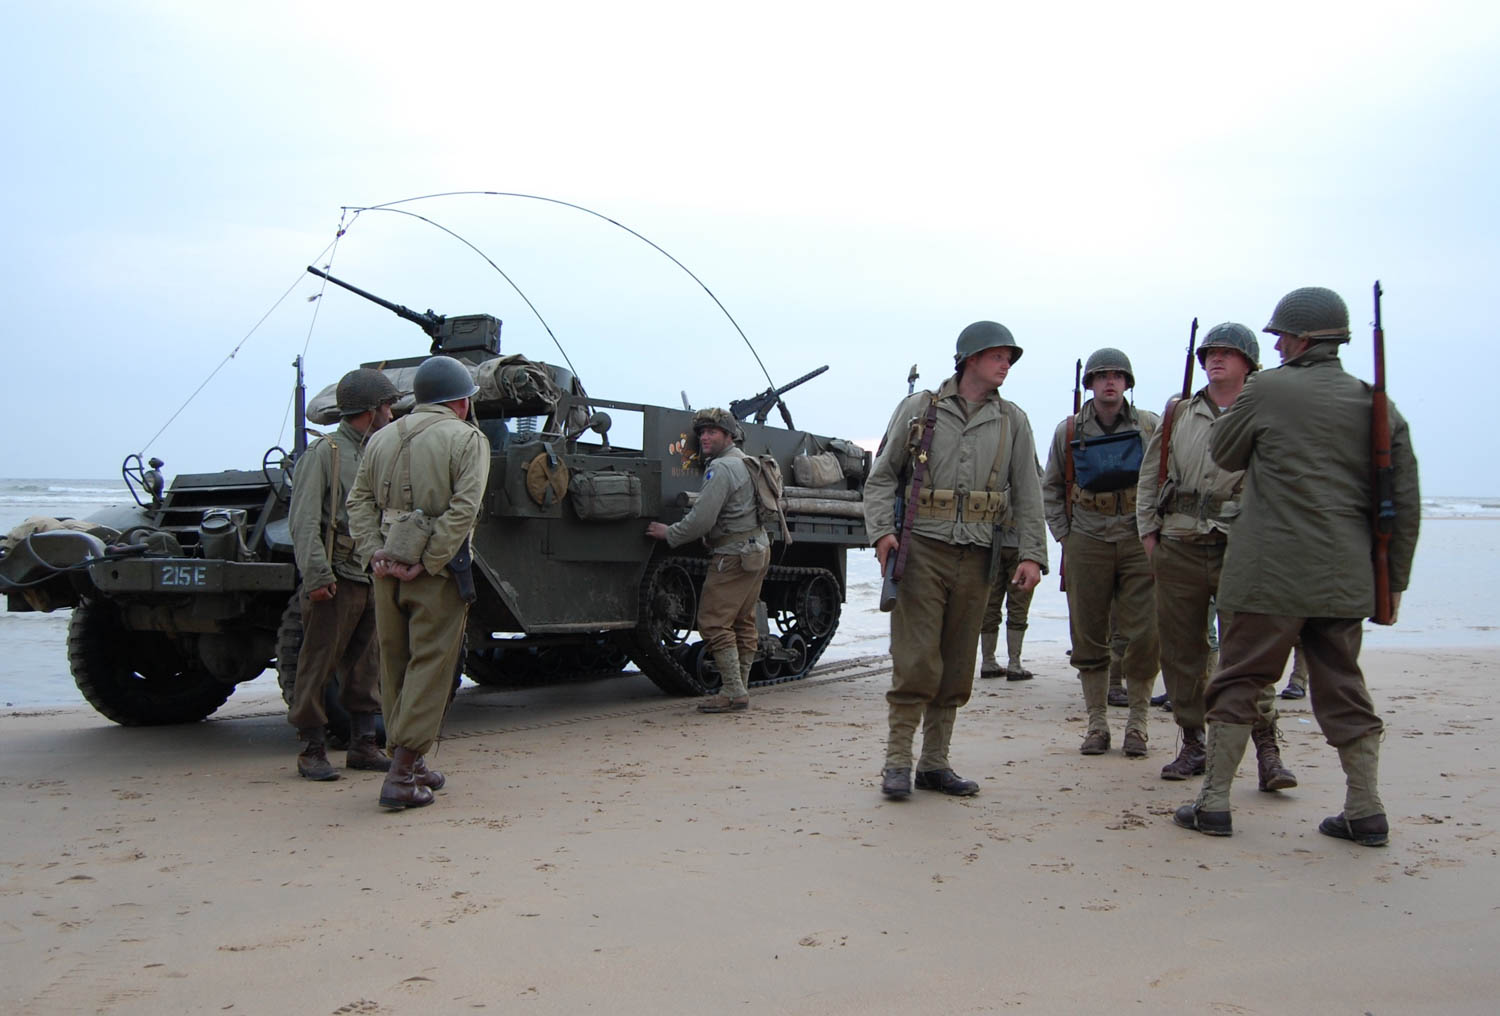 Vintage military vehicles ready to roll on 75th D-Day thumbnail